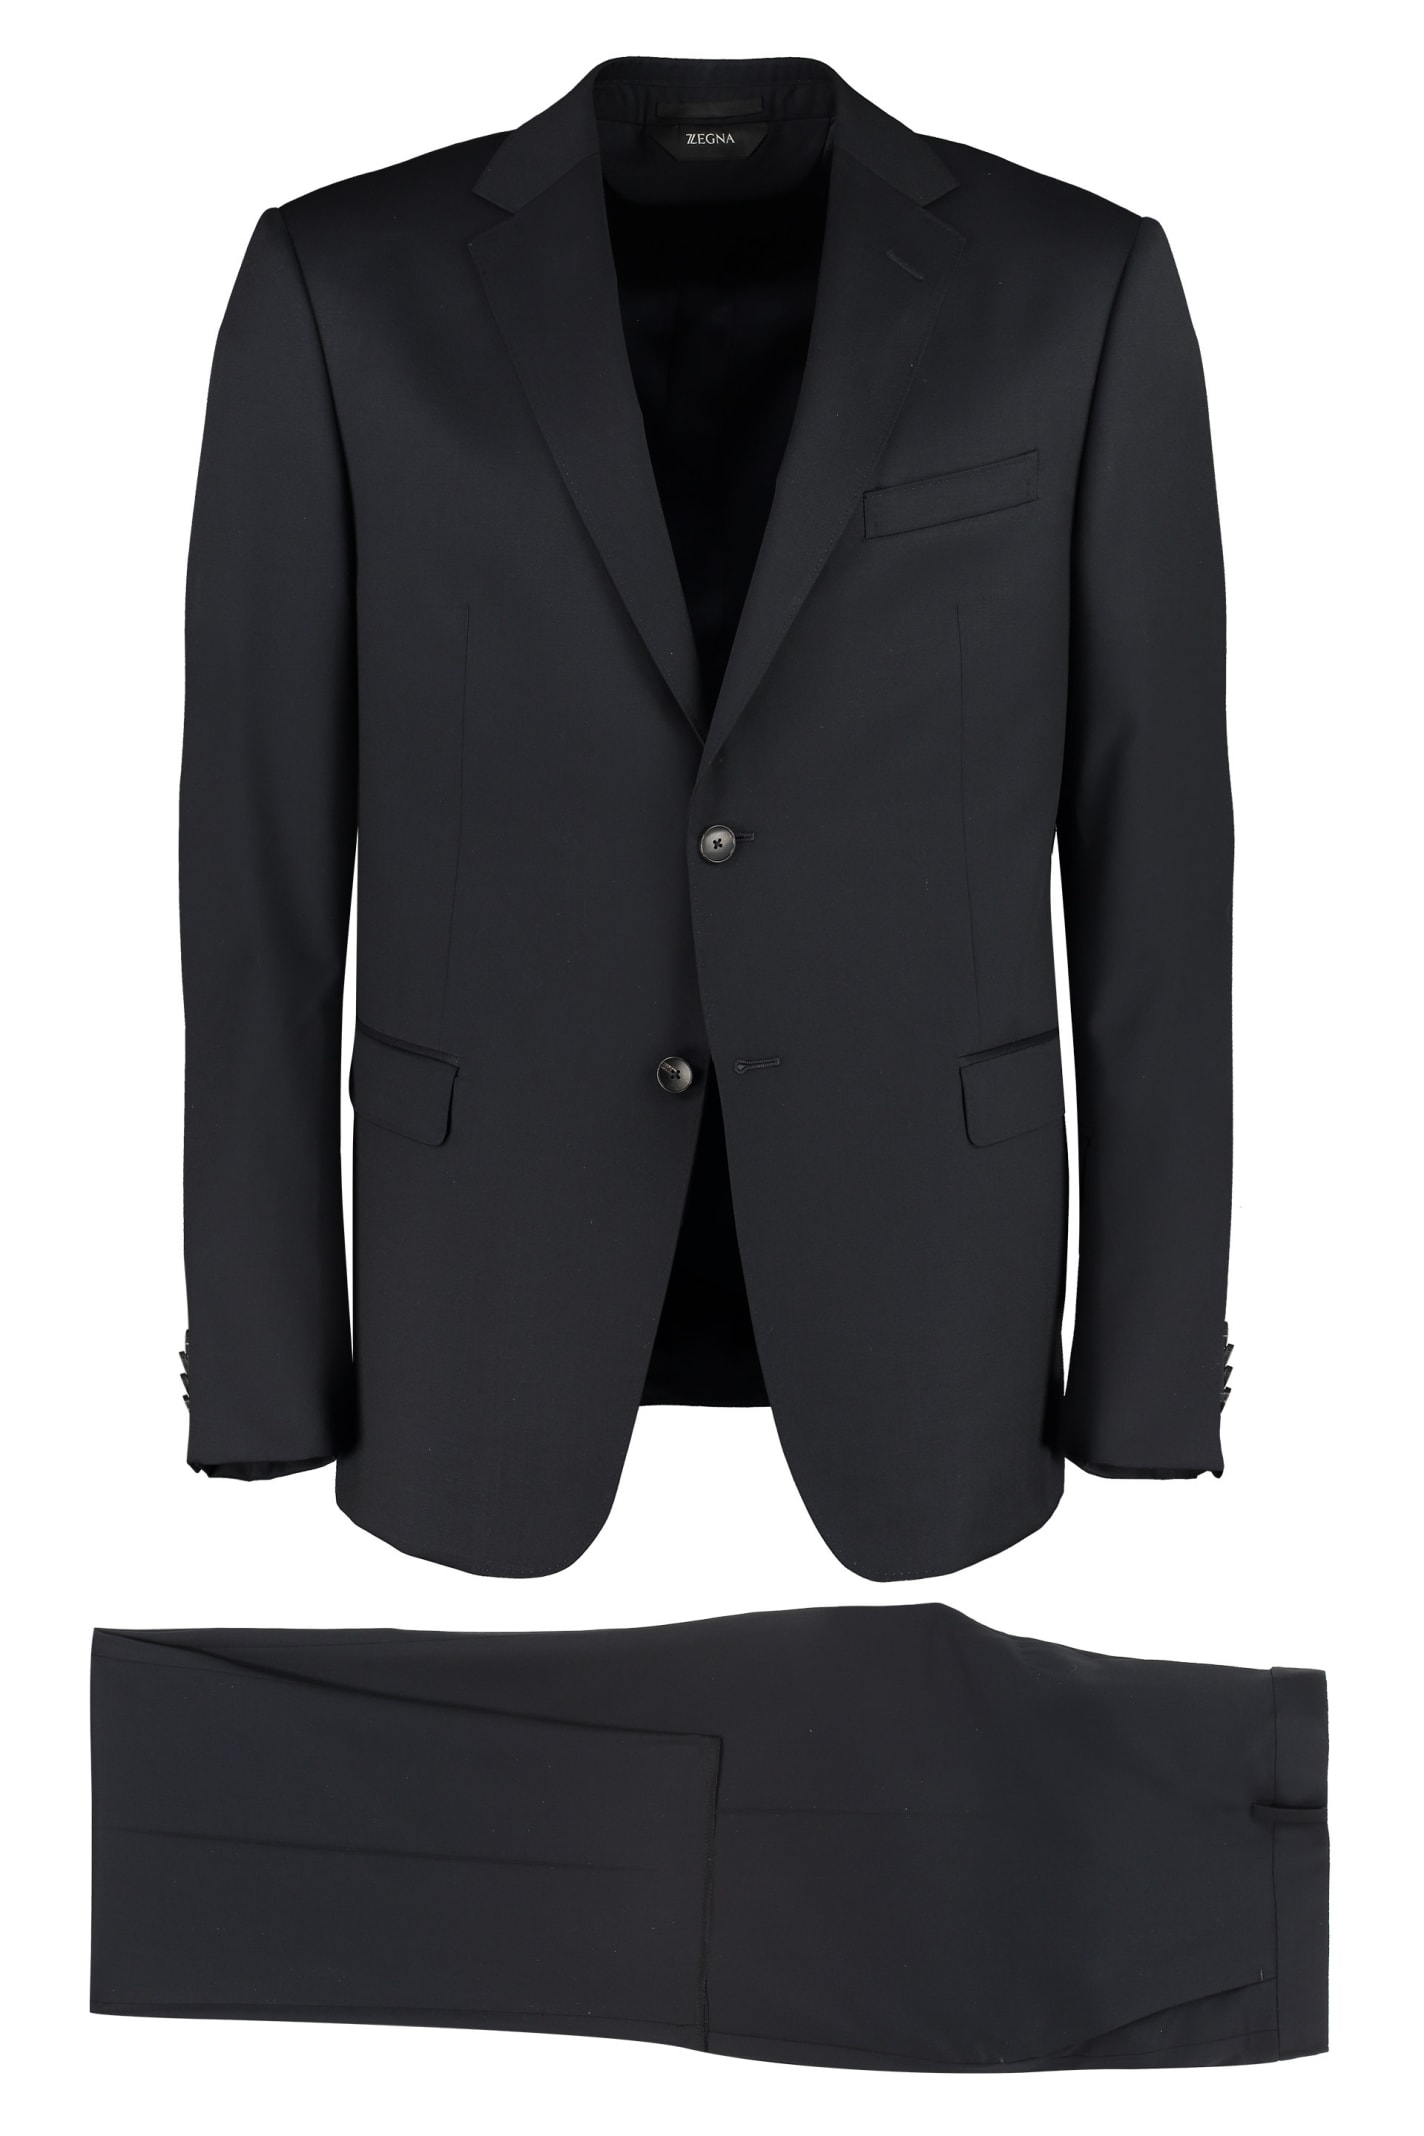 Z Zegna WOOL TWO-PIECES SUIT